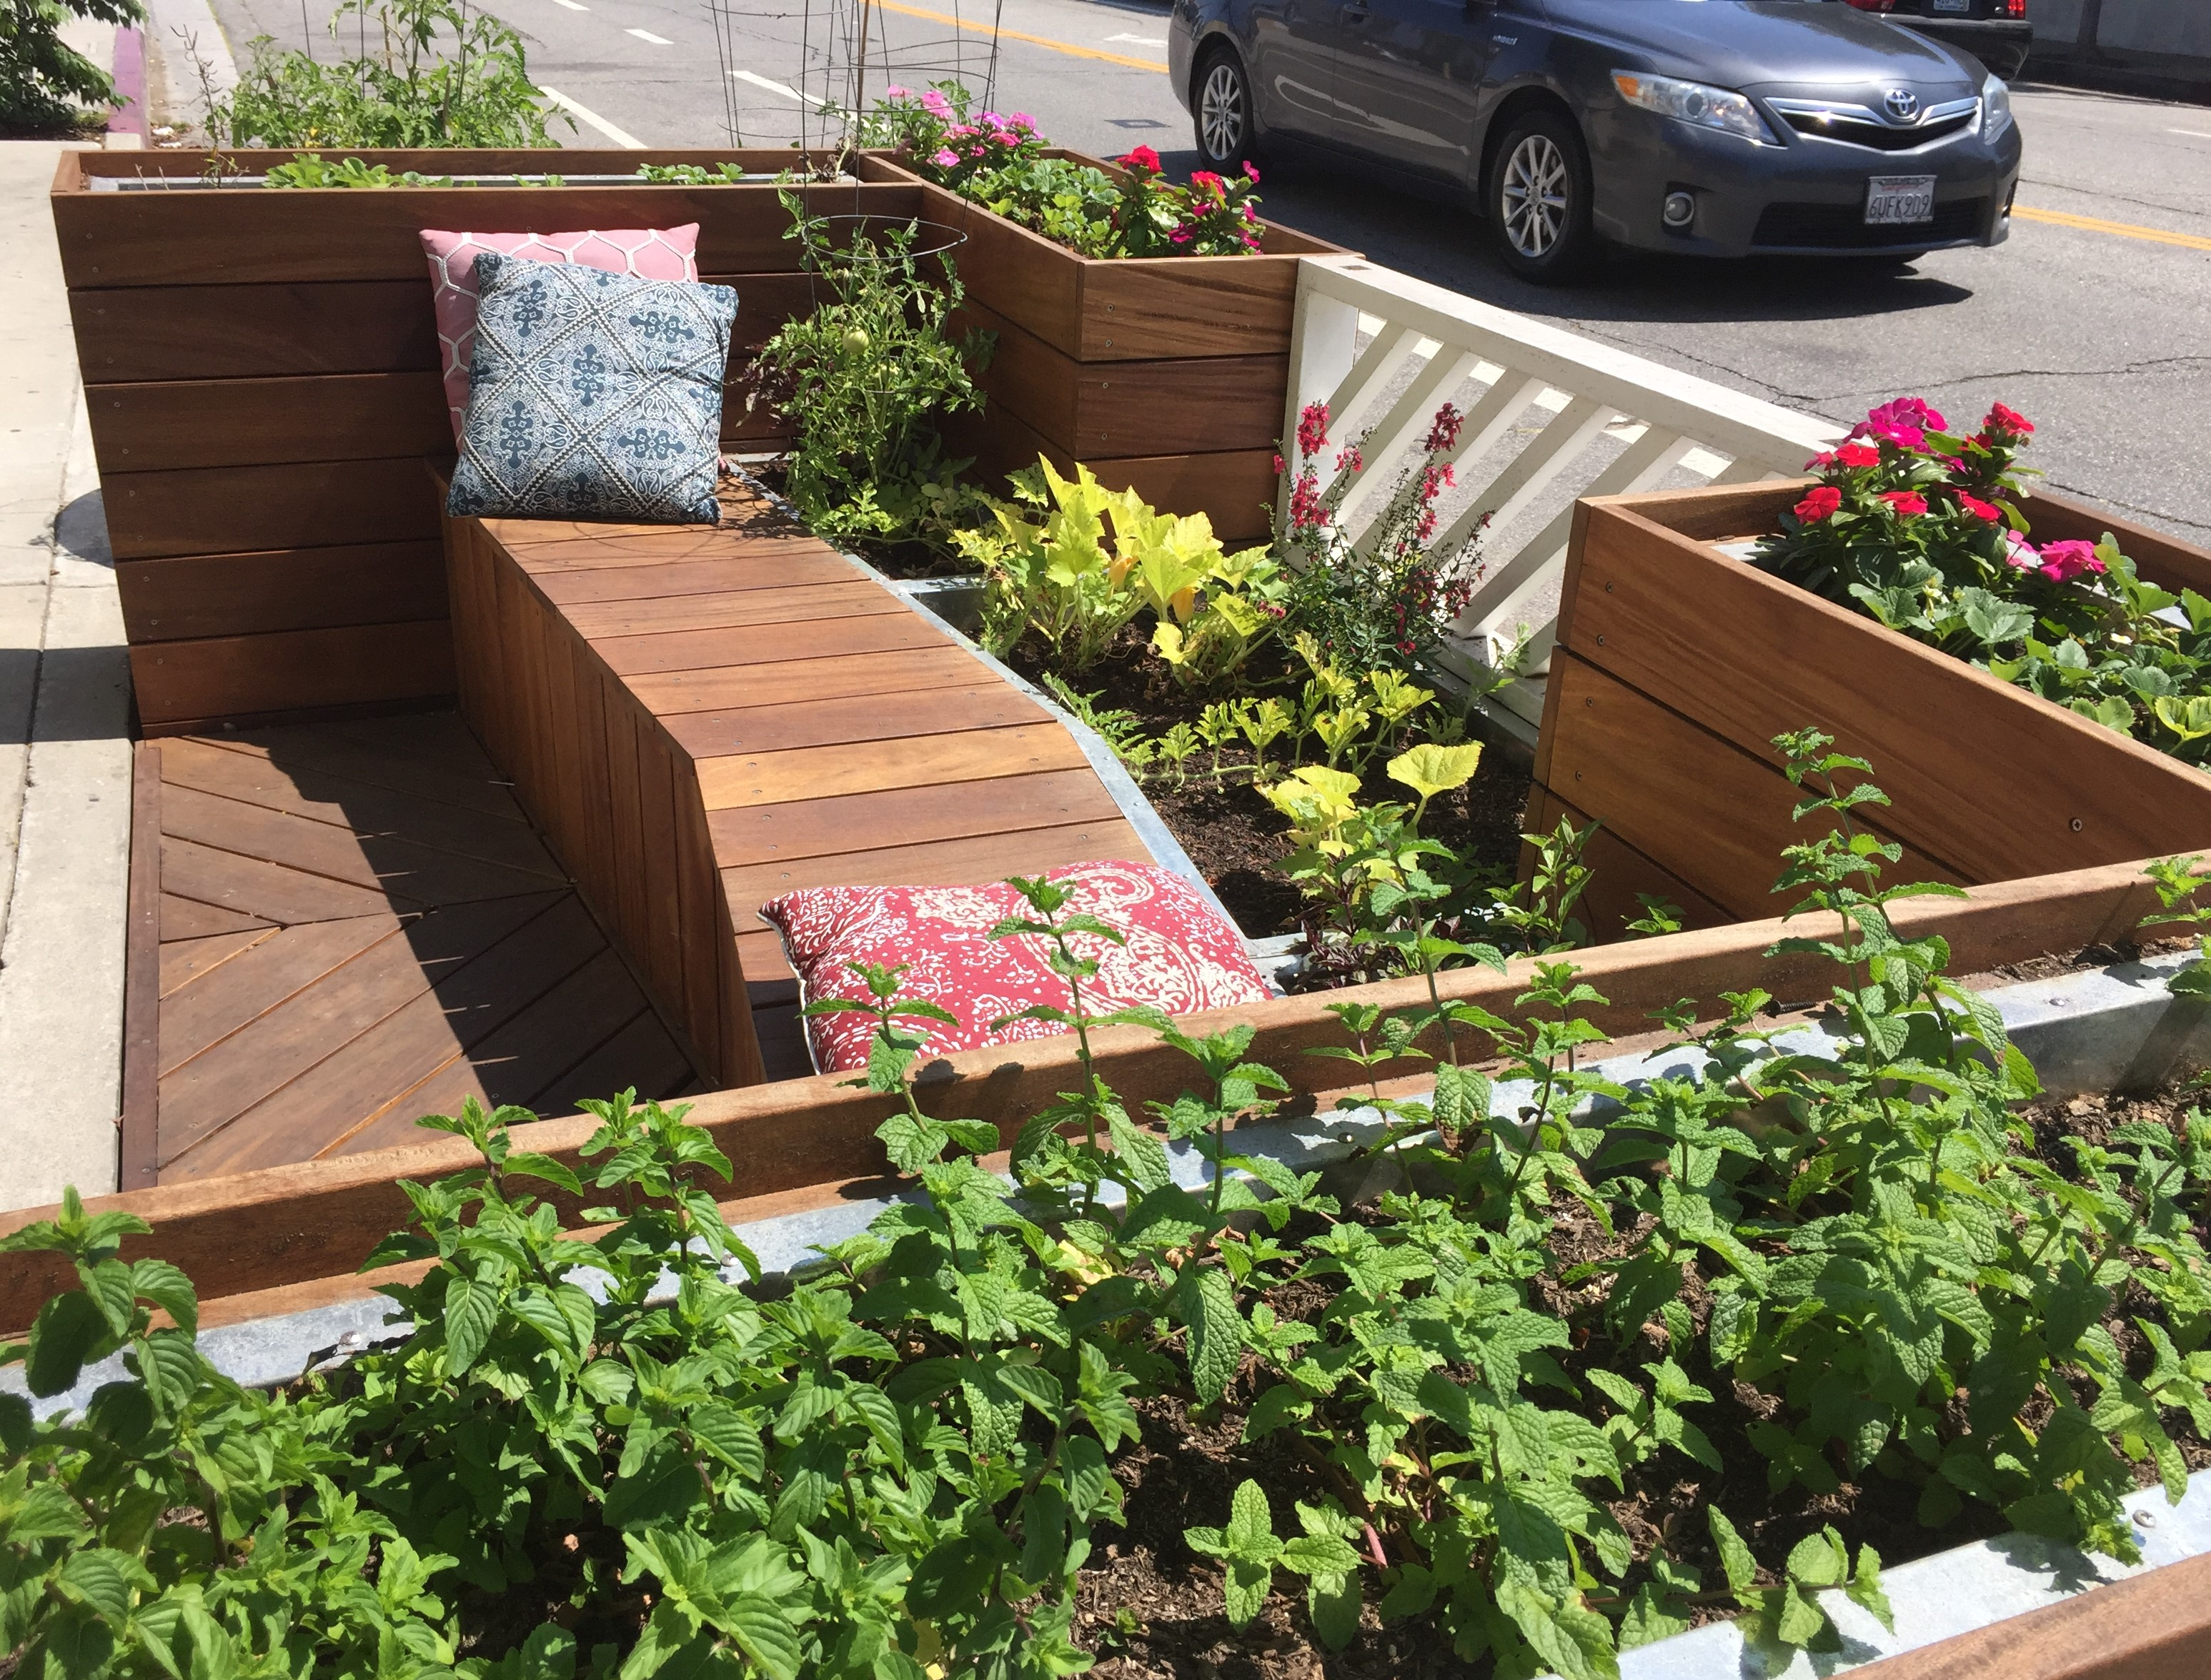 Herbs and vegetables in the north parklet